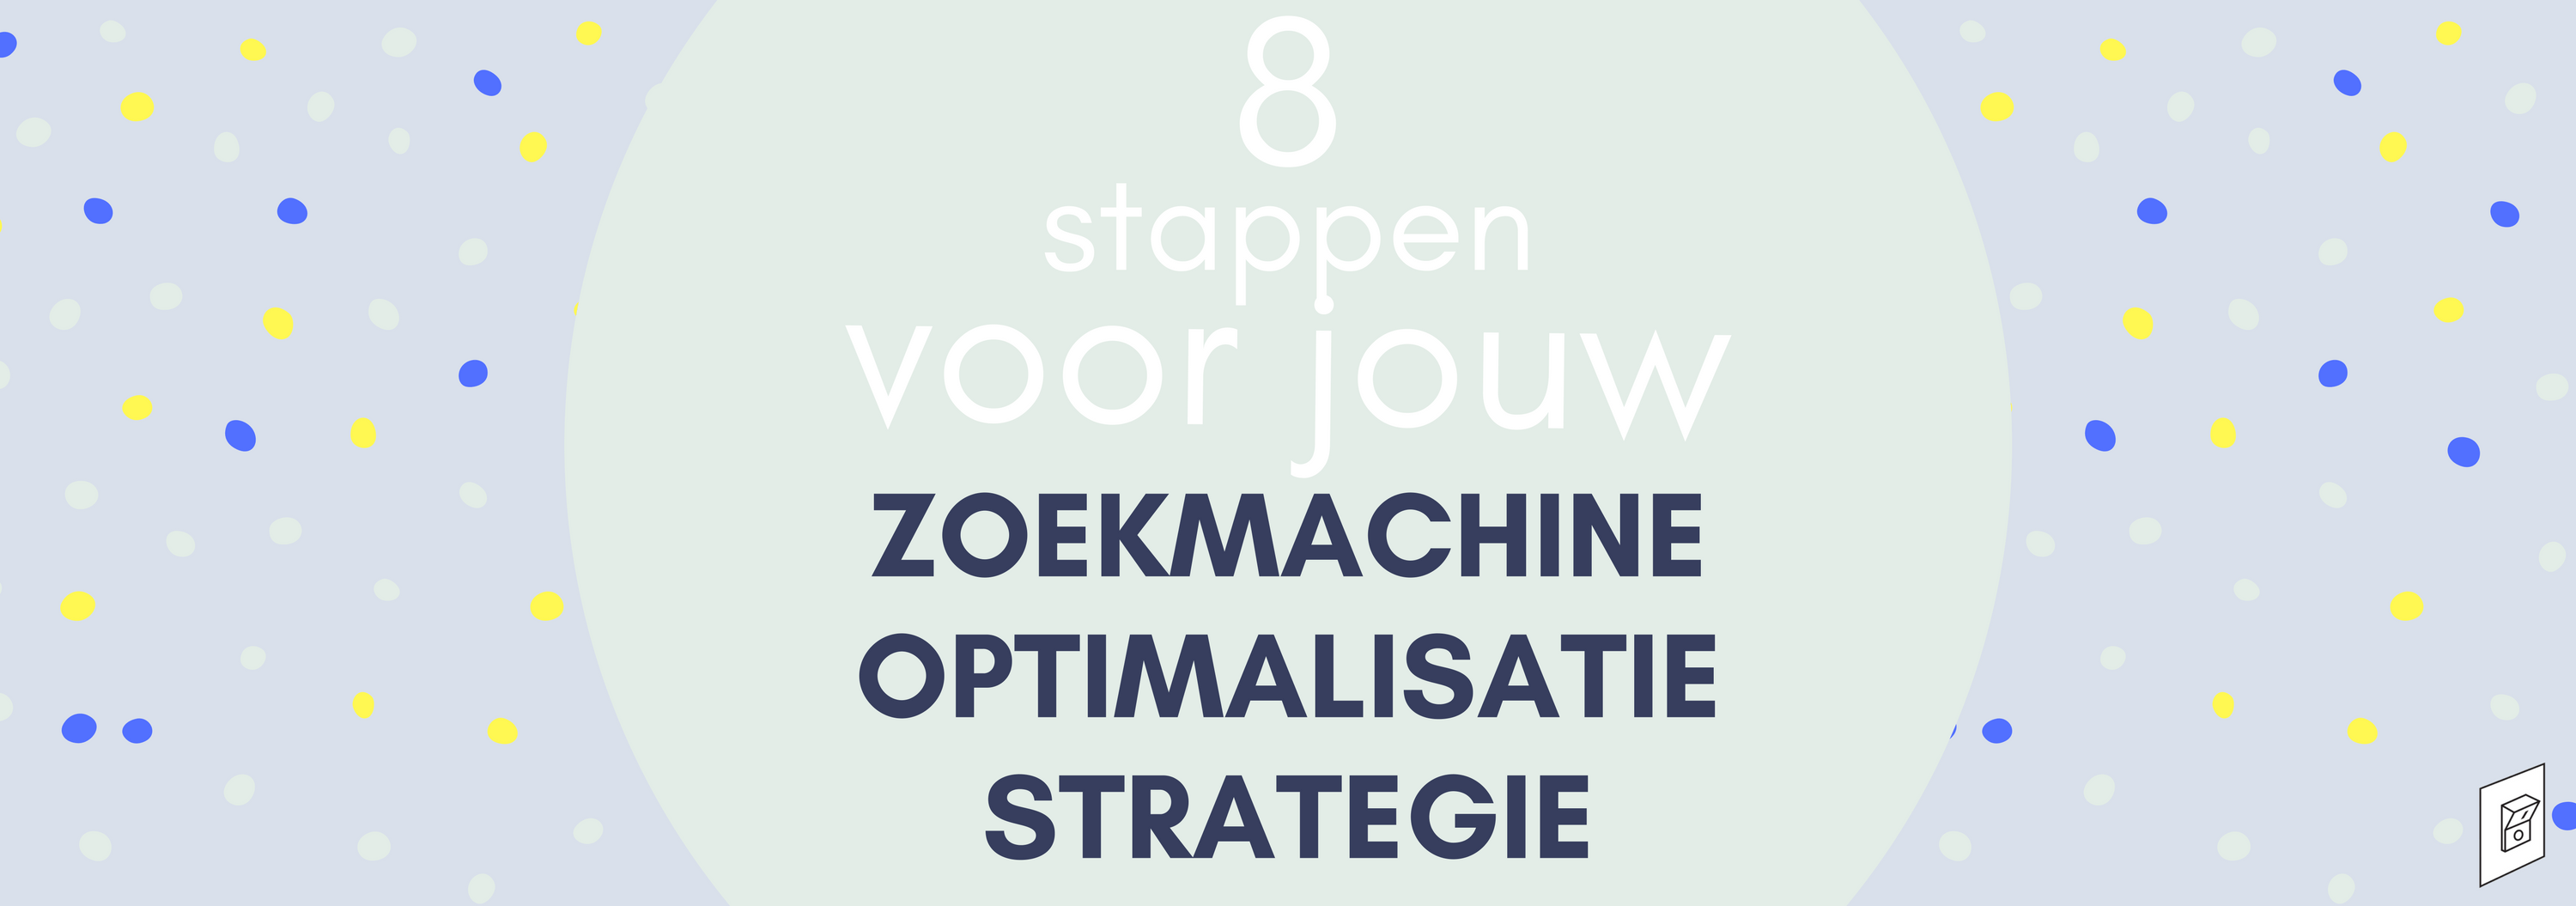 SEO strategie in 8 stappen